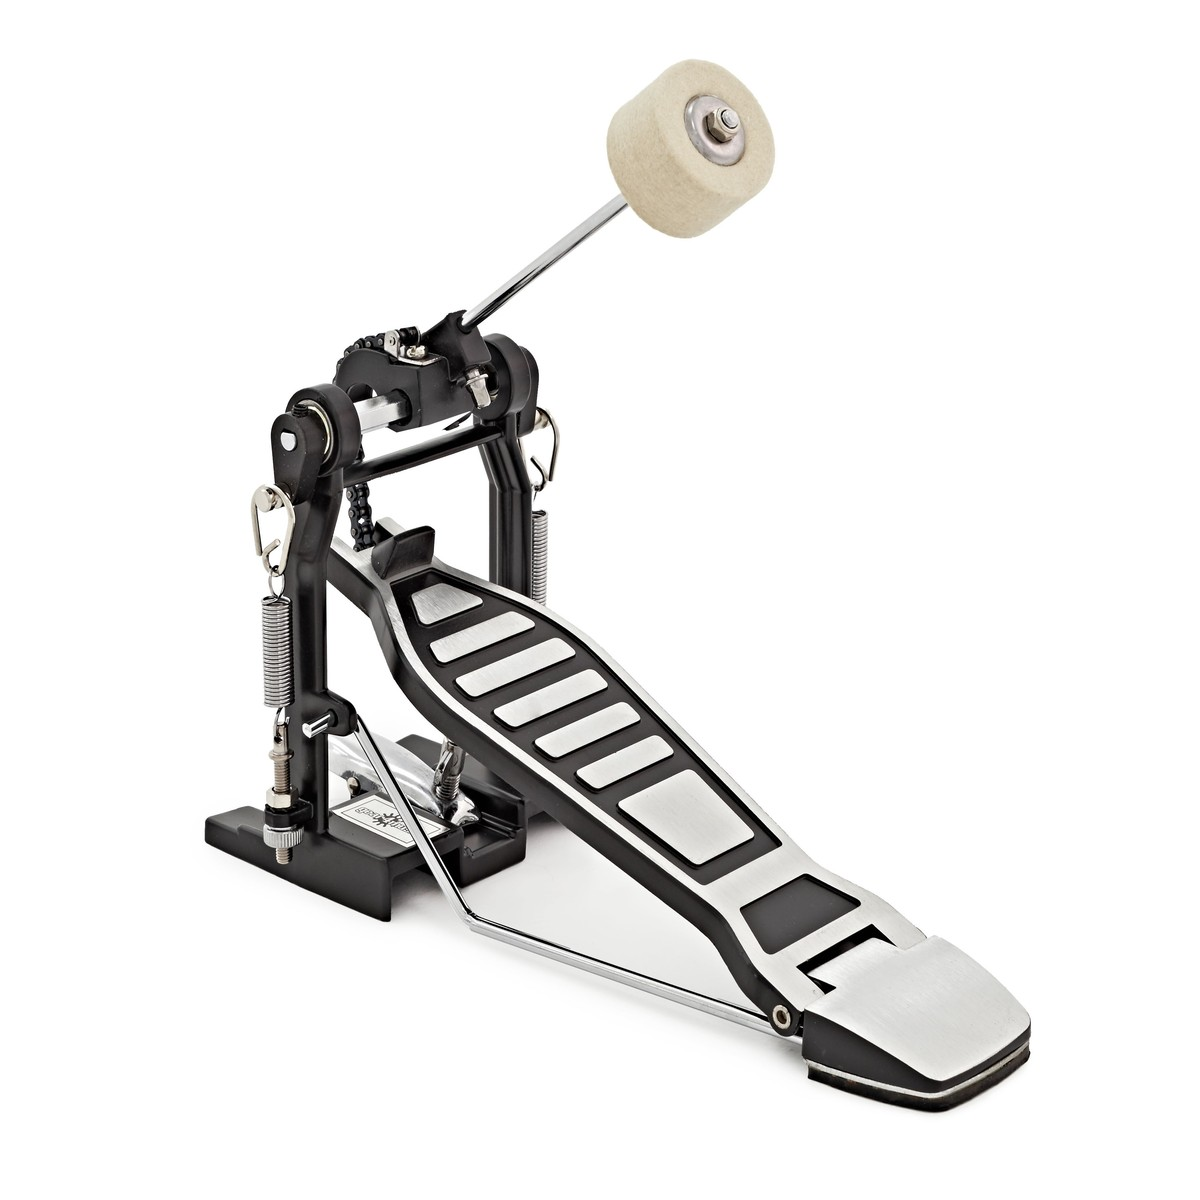 Image of Kick Drum Pedal by Gear4music